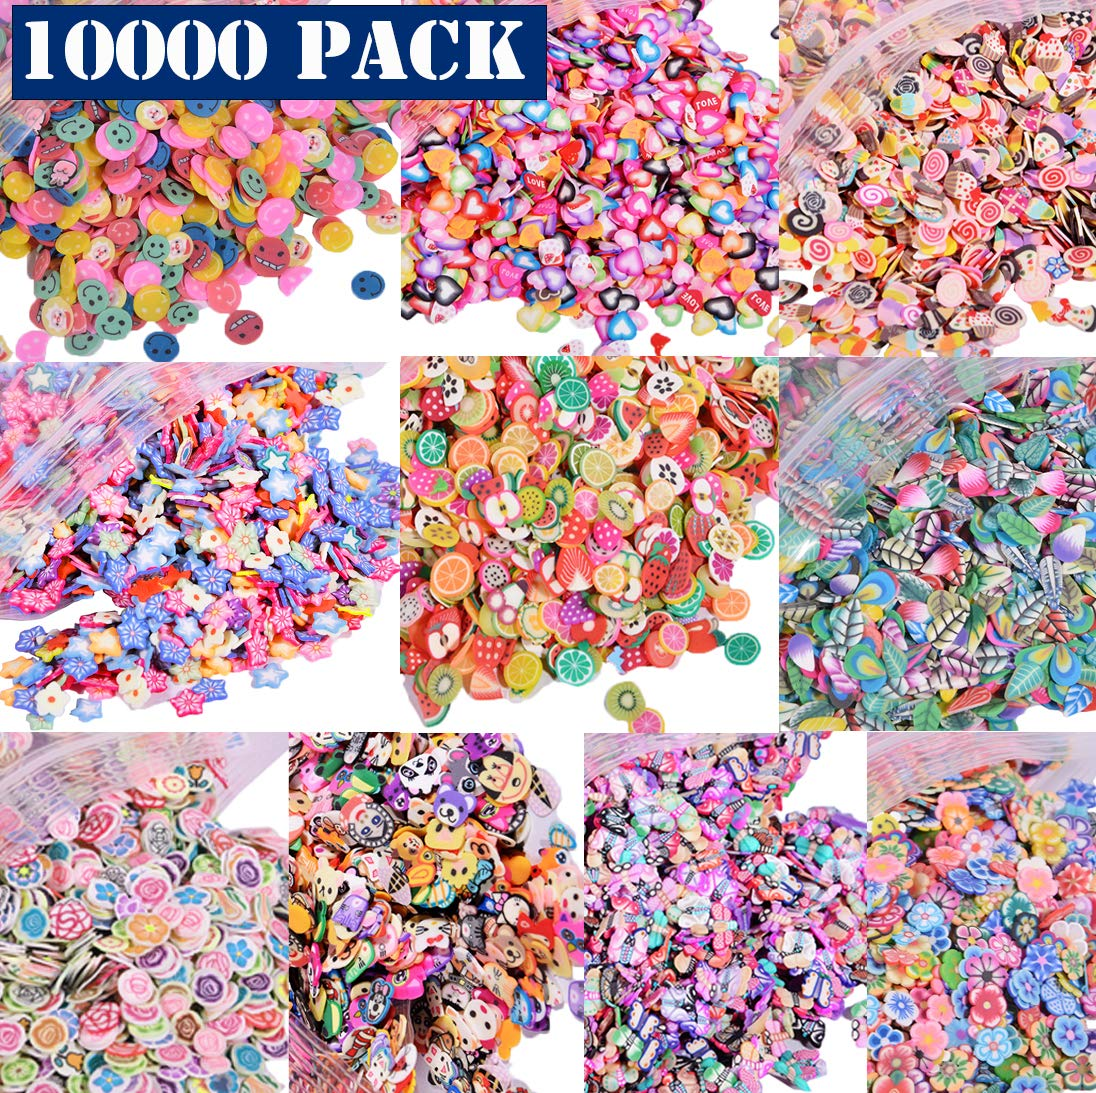 40 Pack Slime Making kit, Including 10 Pack Color Foam Balls, 10 Pcs Slime Containers, 12 Bottles Glitter Powder,3 pcs Fishibowl Beads, 5 Pcs Glue Mixing Spoons for Slime Making Craft Ehope